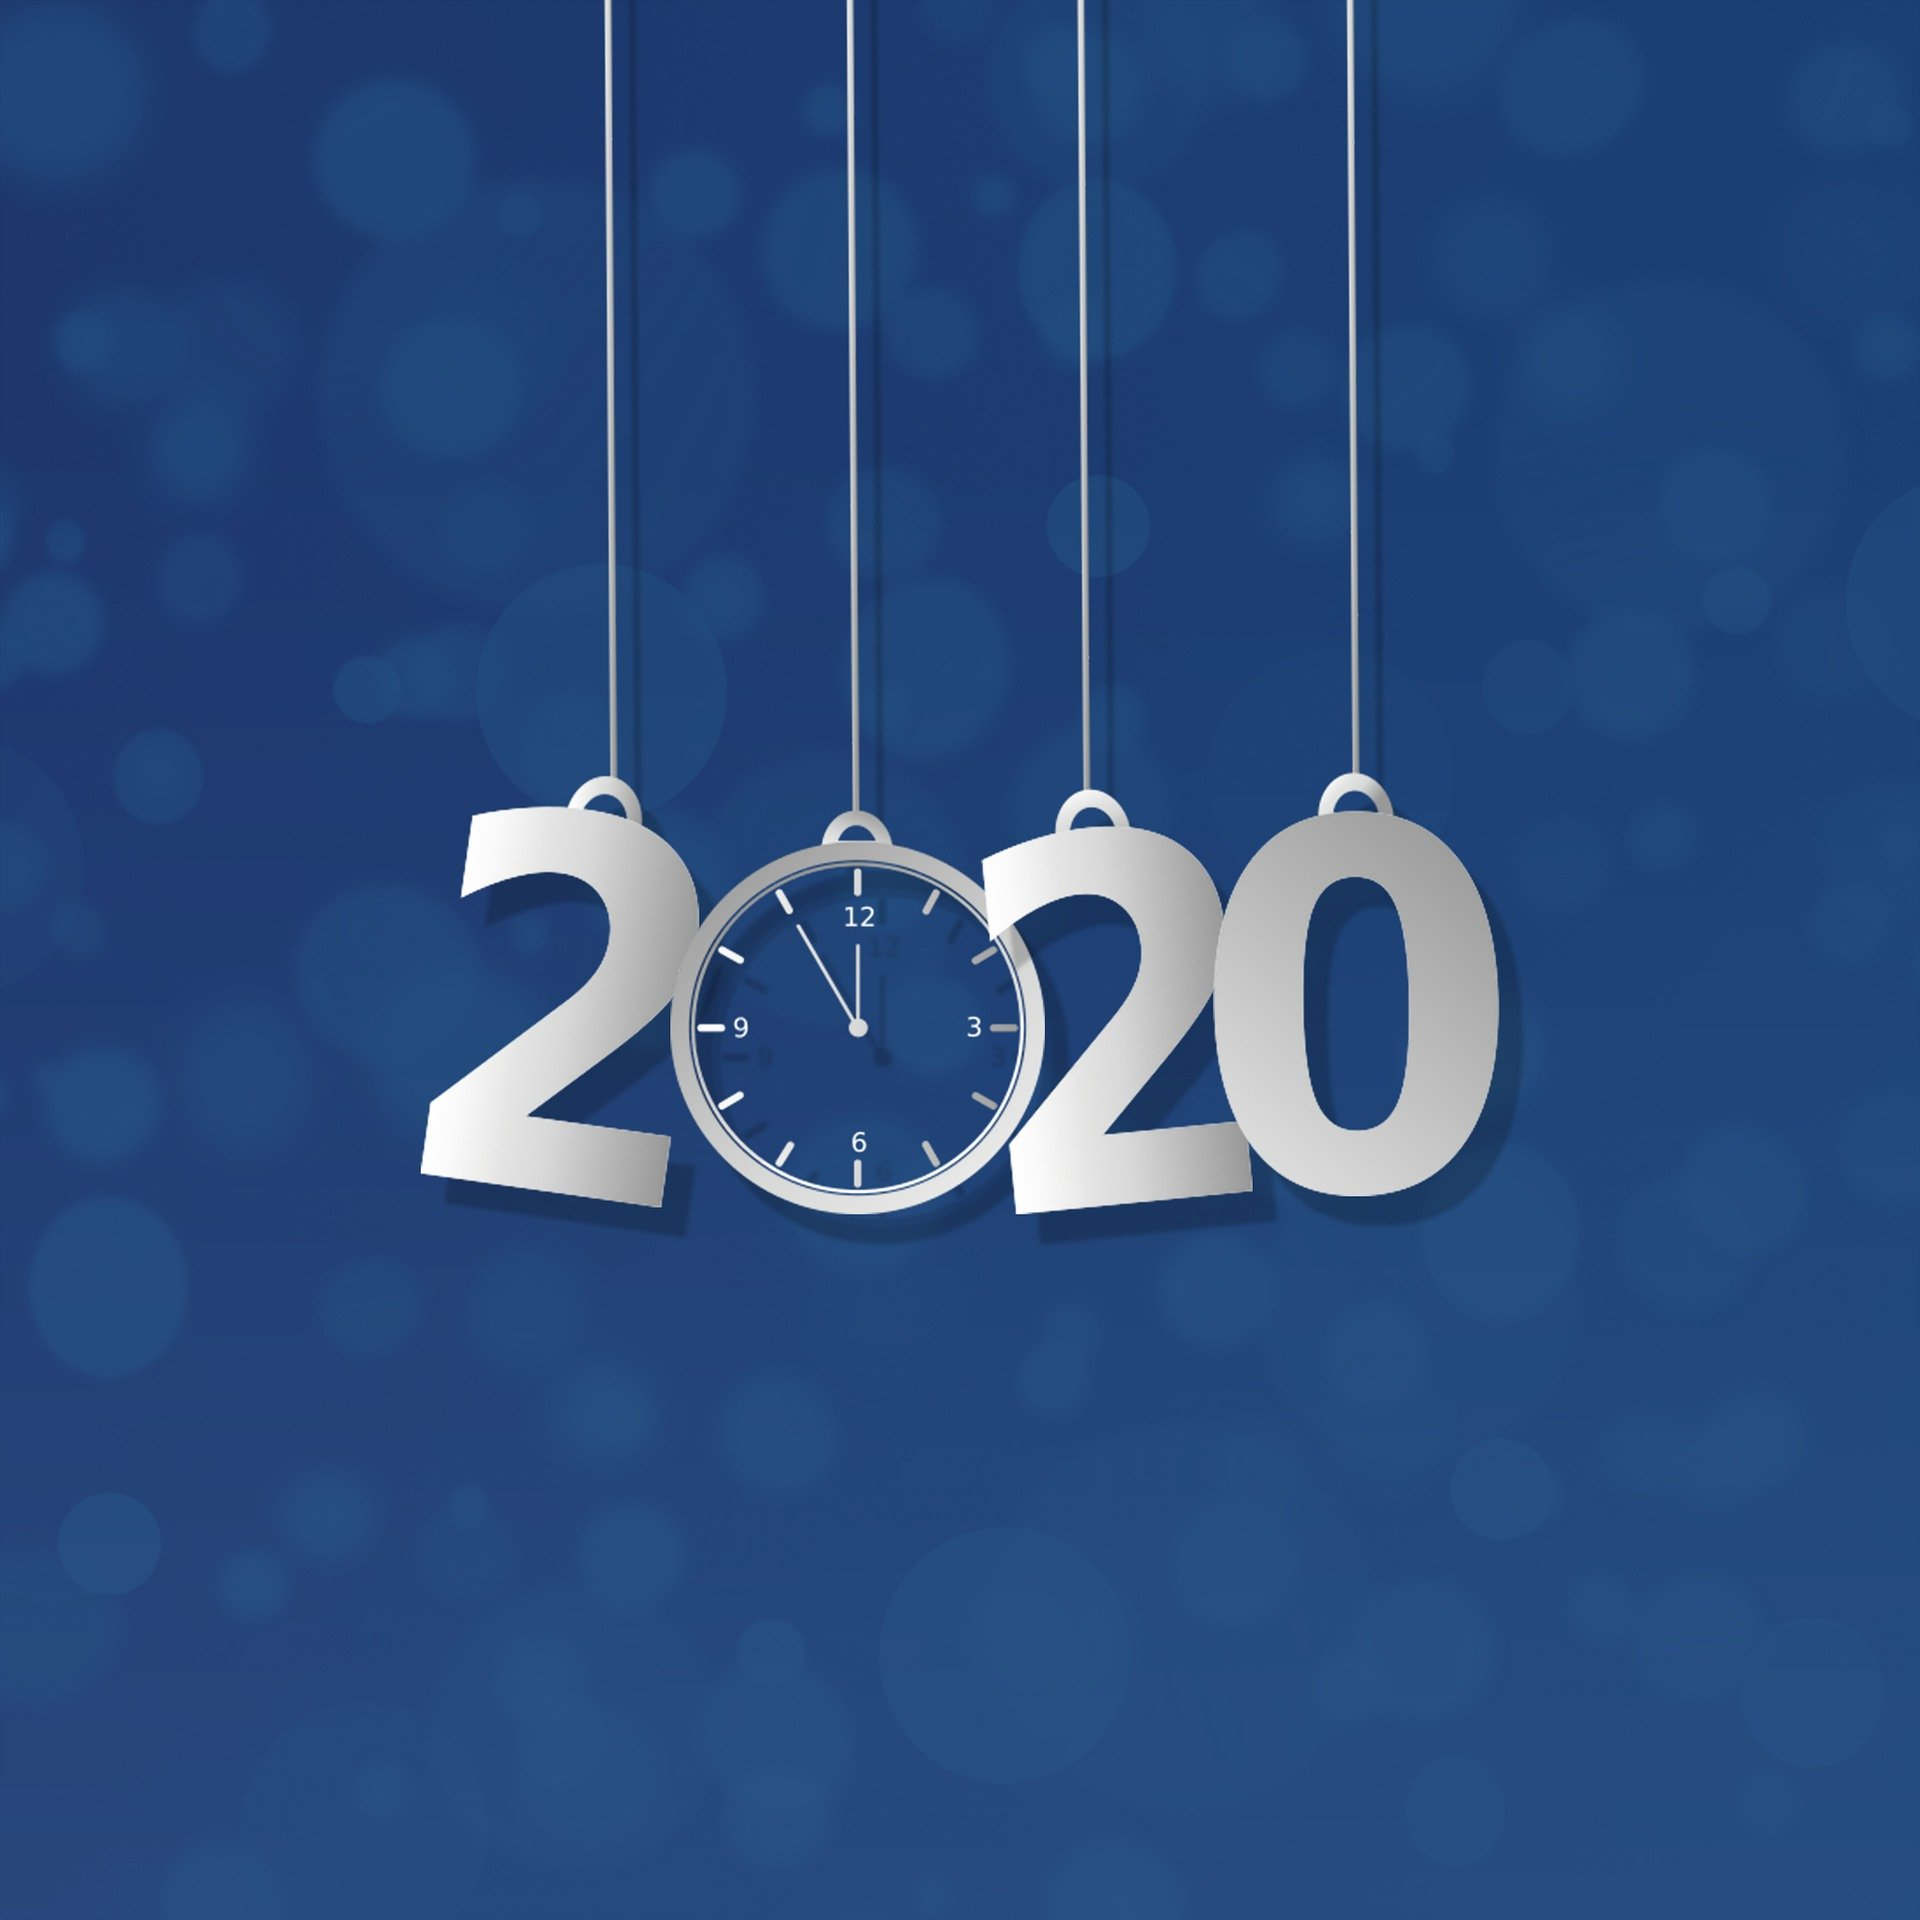 time-2020